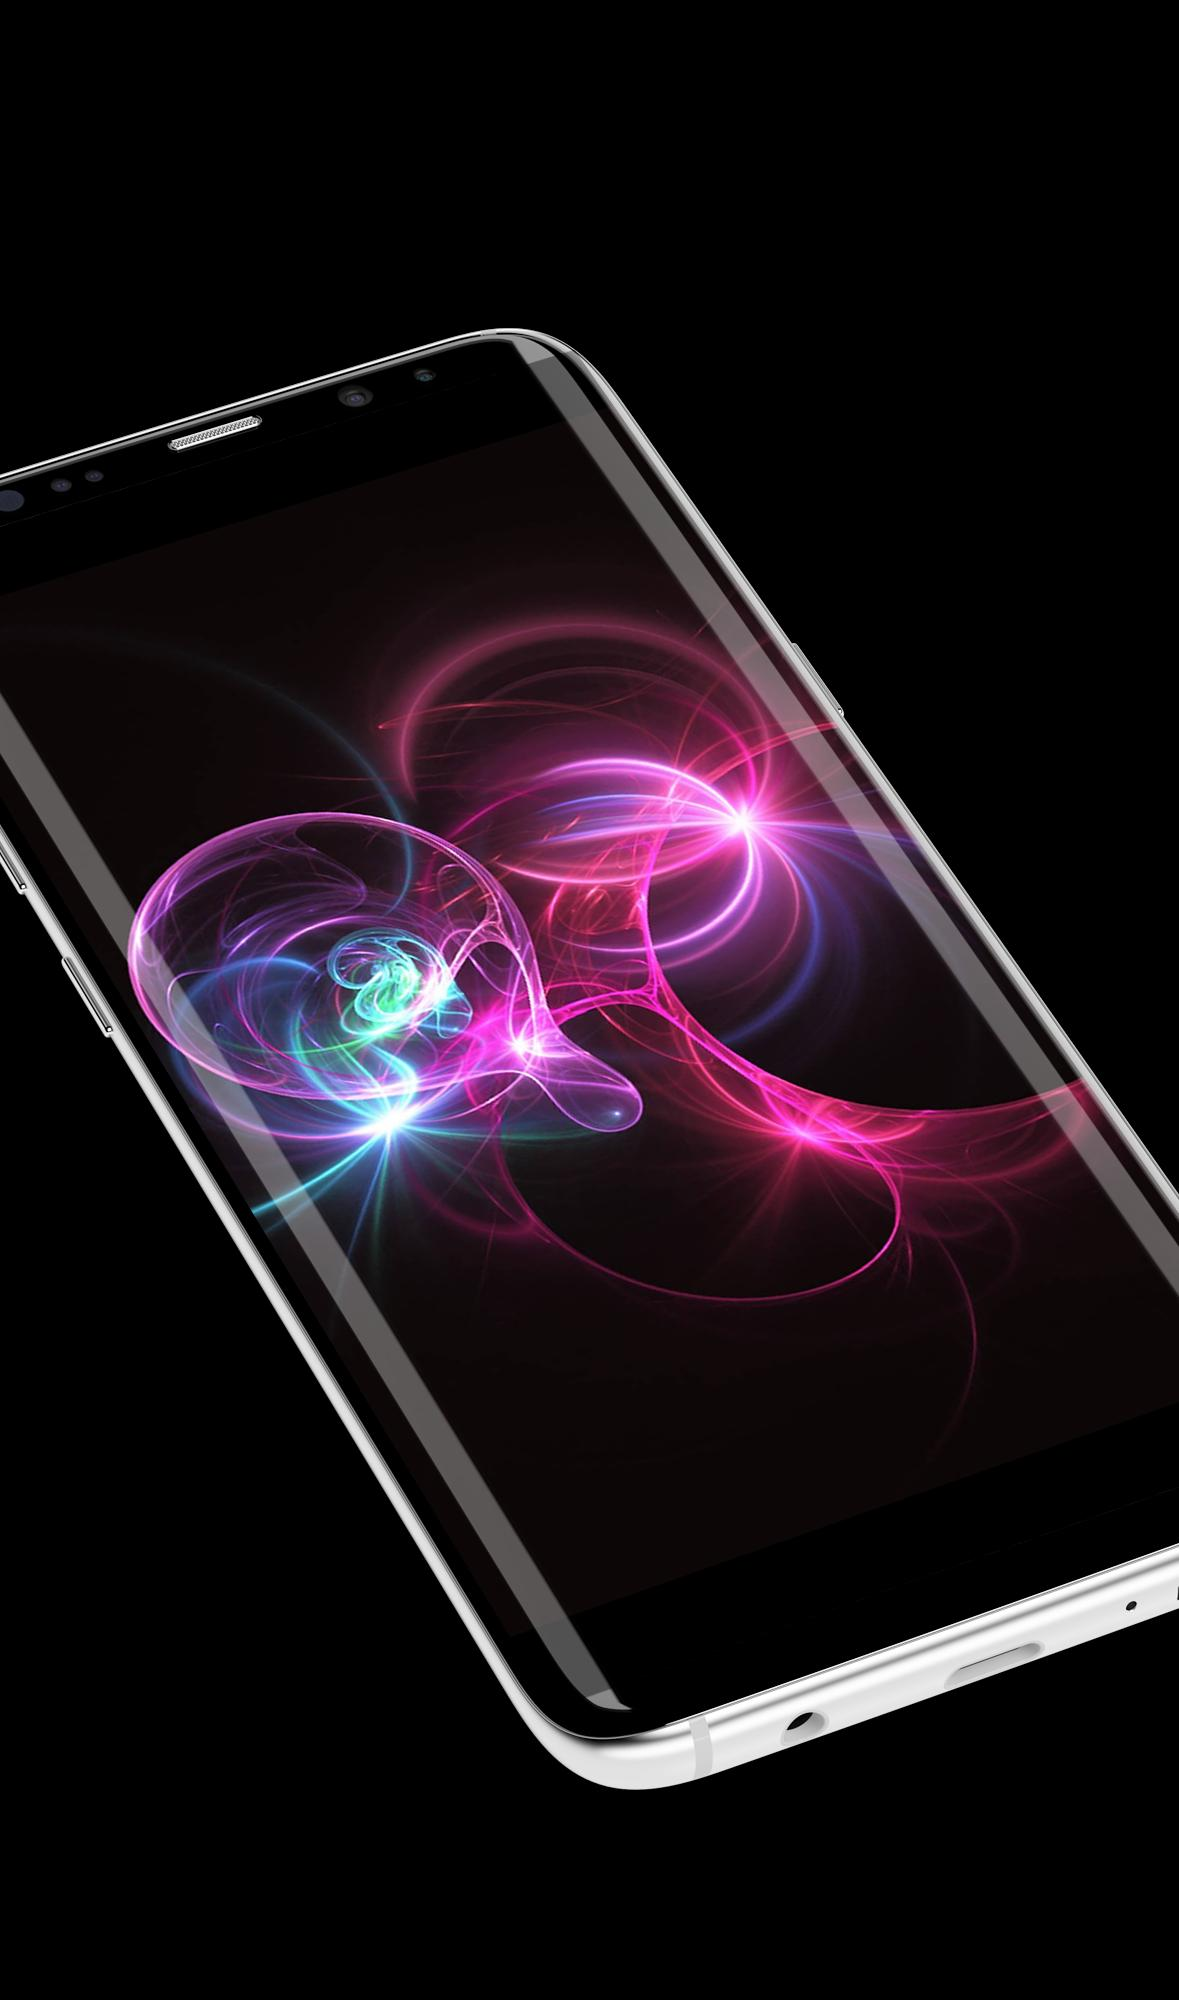 3D Wallpapers for Android APK Download